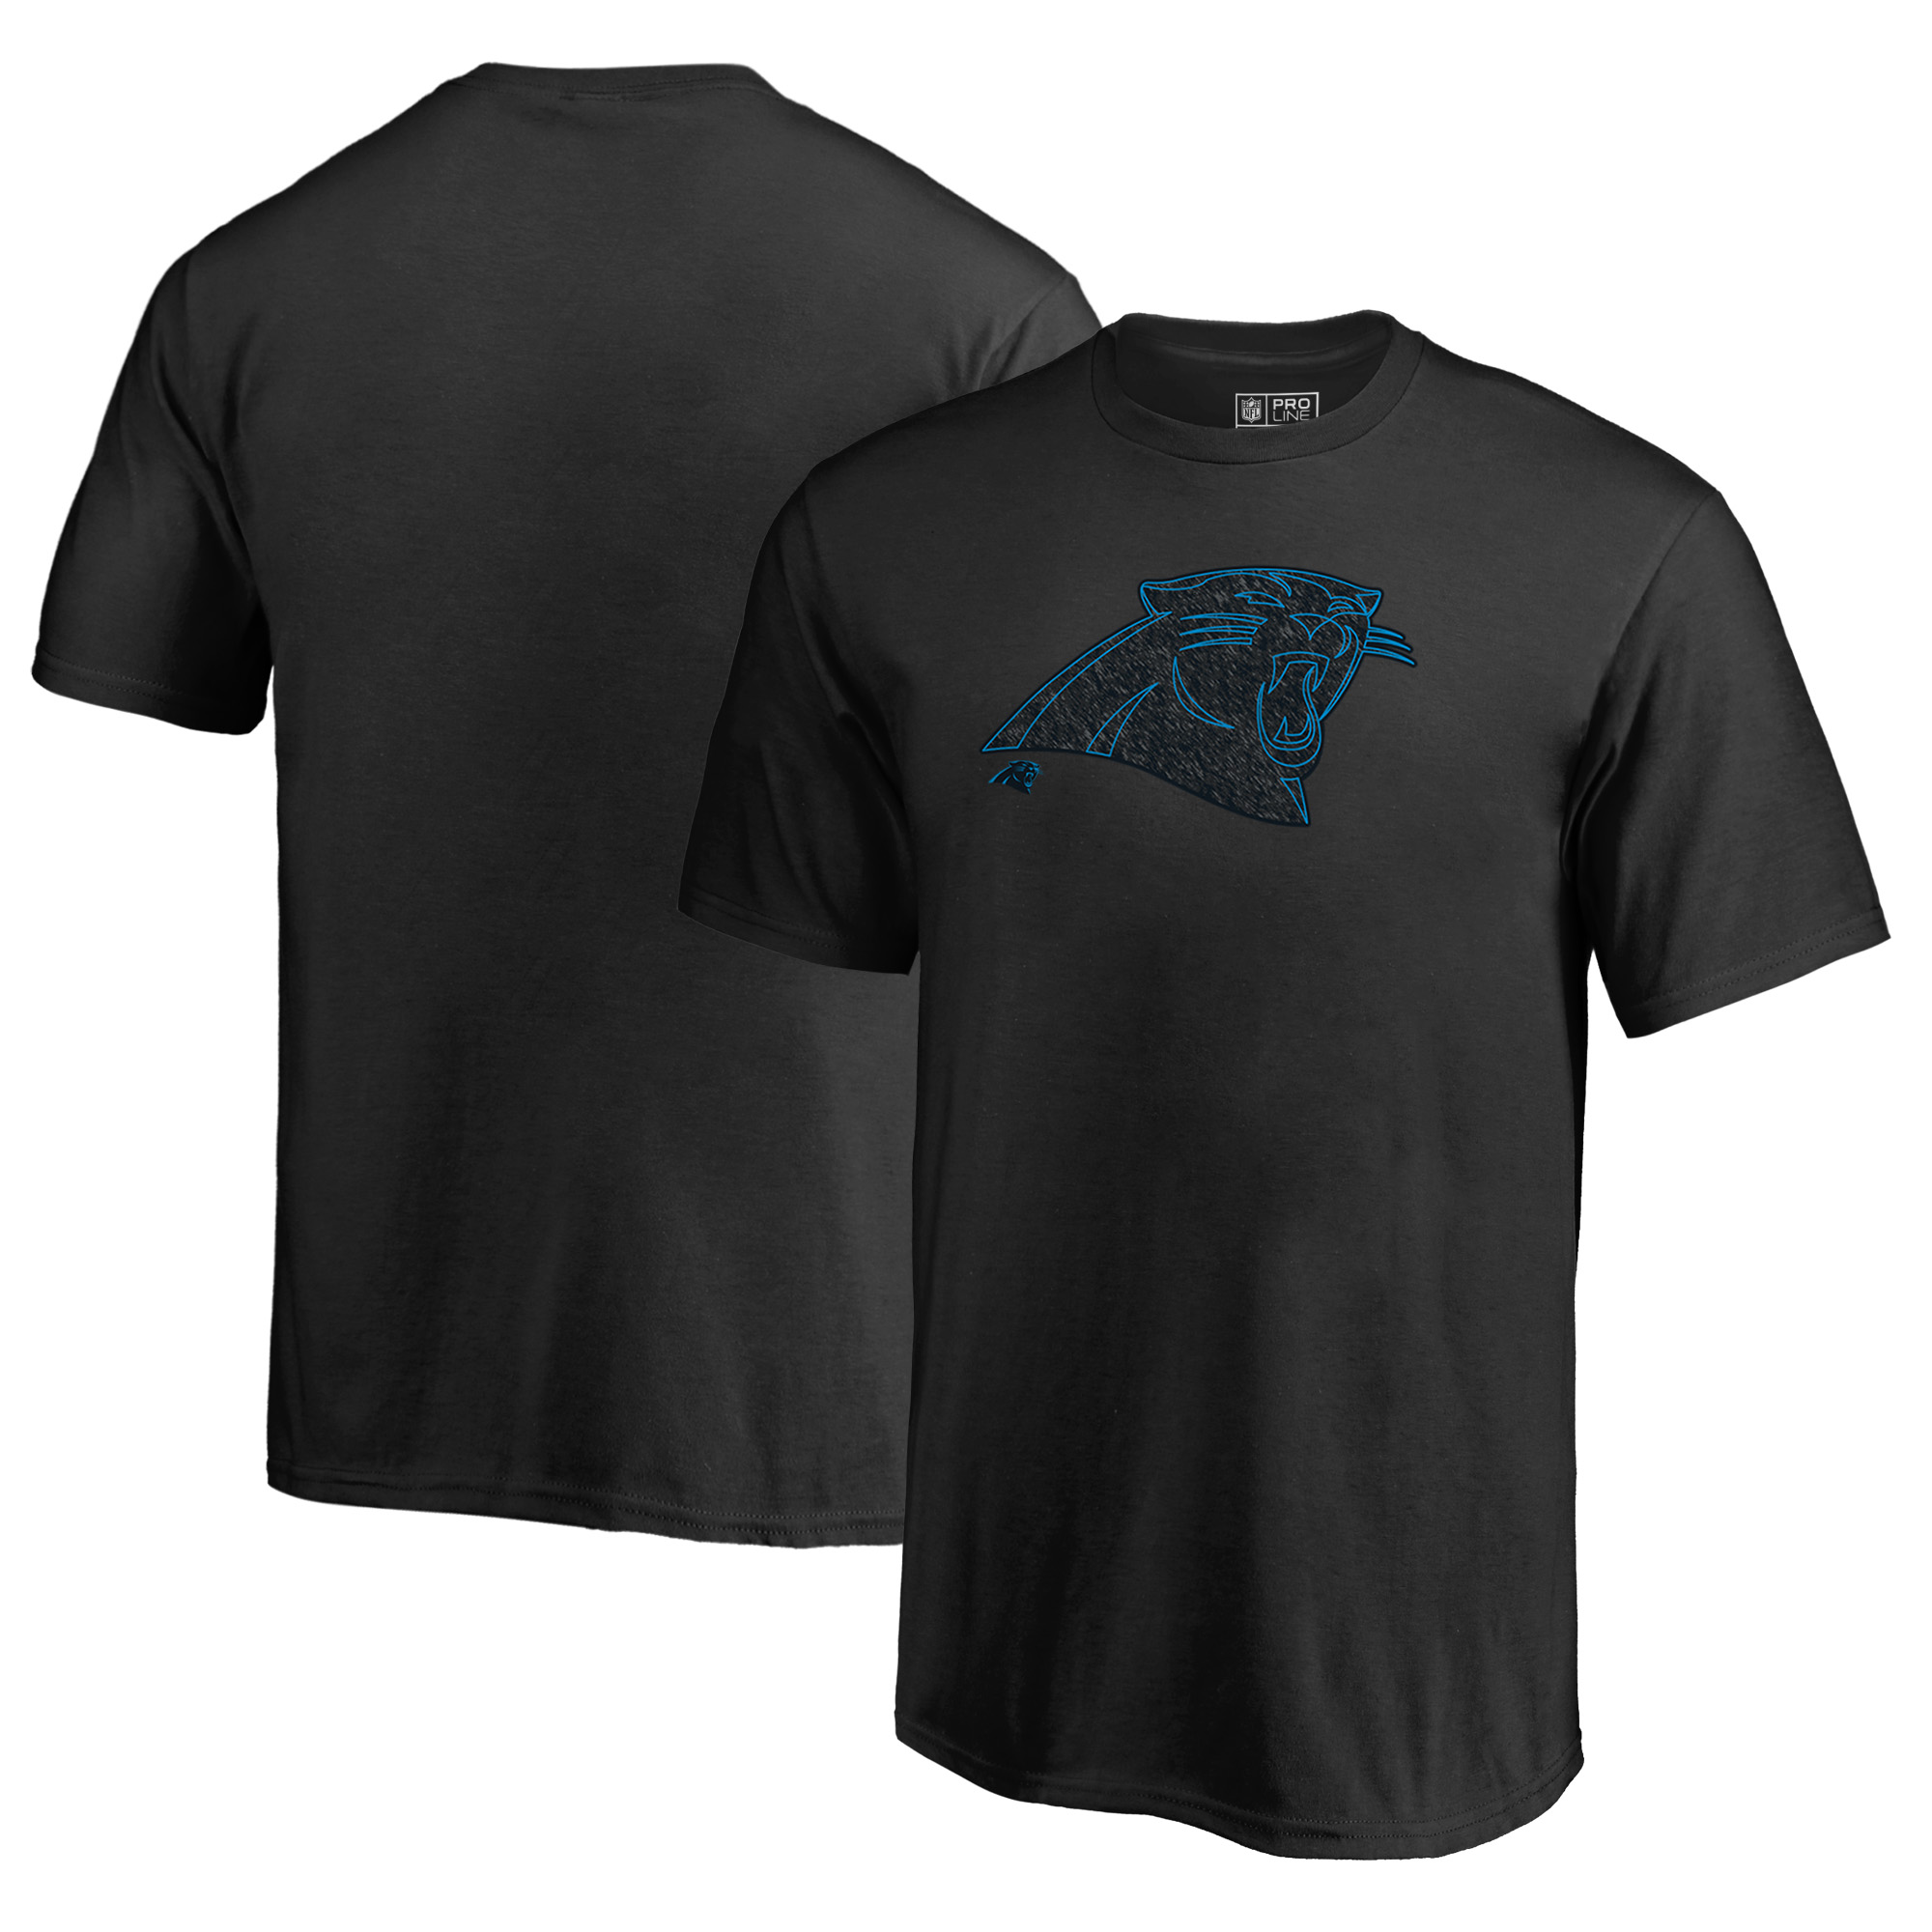 Carolina Panthers NFL Pro Line by Fanatics Branded Youth Training Camp Hookup T-Shirt - Black